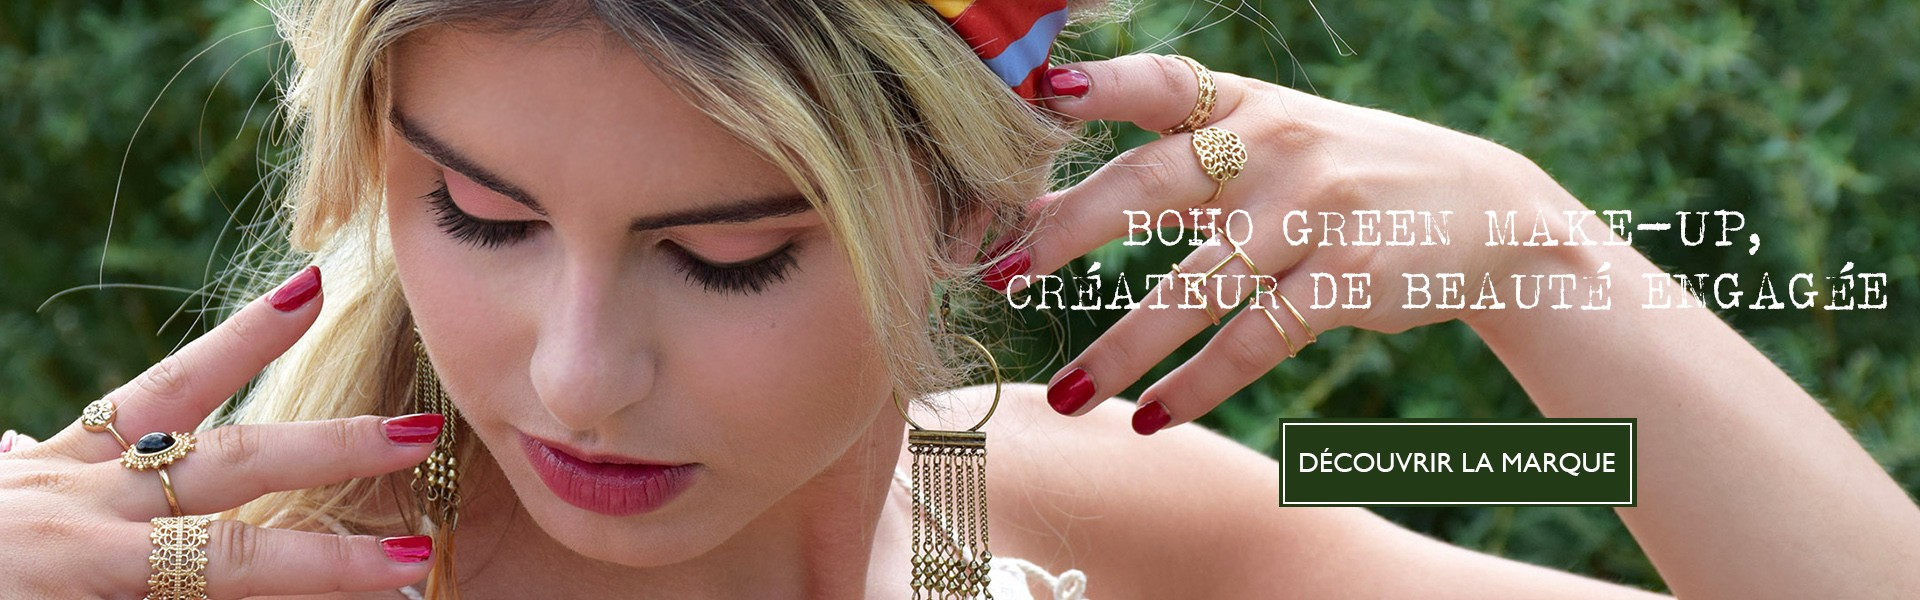 Maquillage bio et naturel Boho Green Make-up